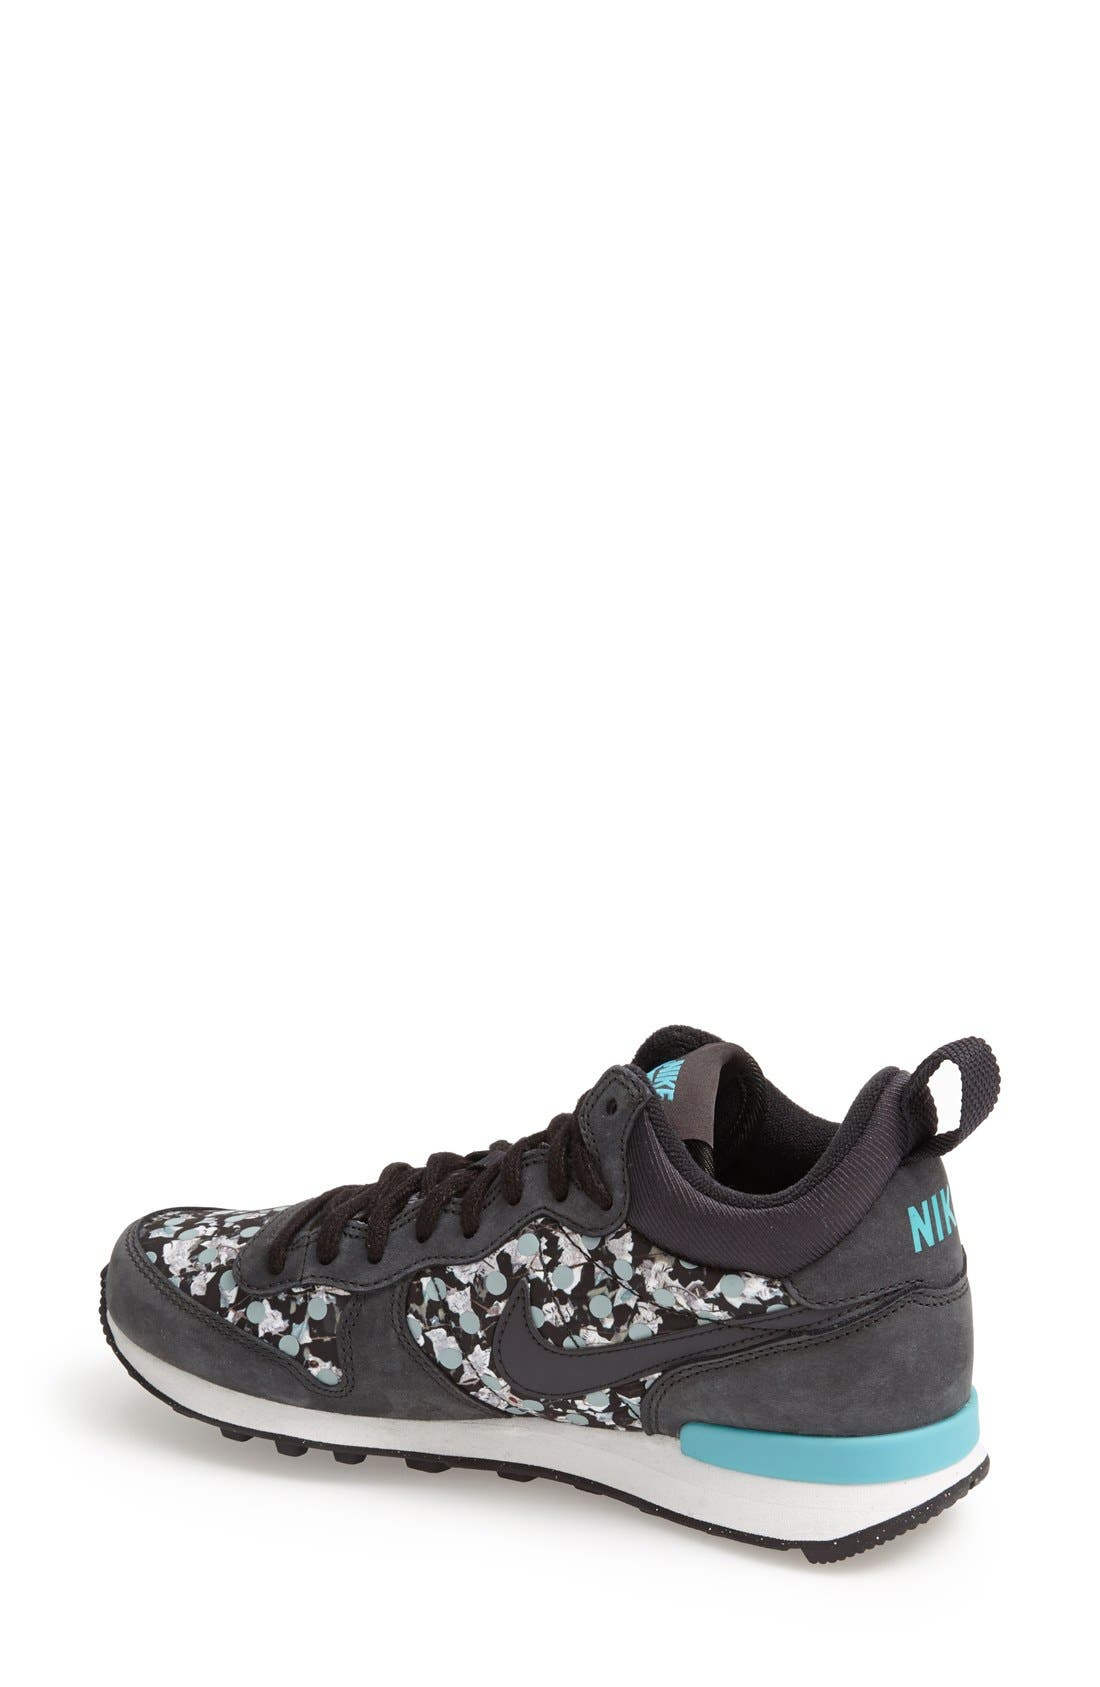 Alternate Image 2  - Nike 'Internationalist Mid - Liberty' Sneaker (Women)